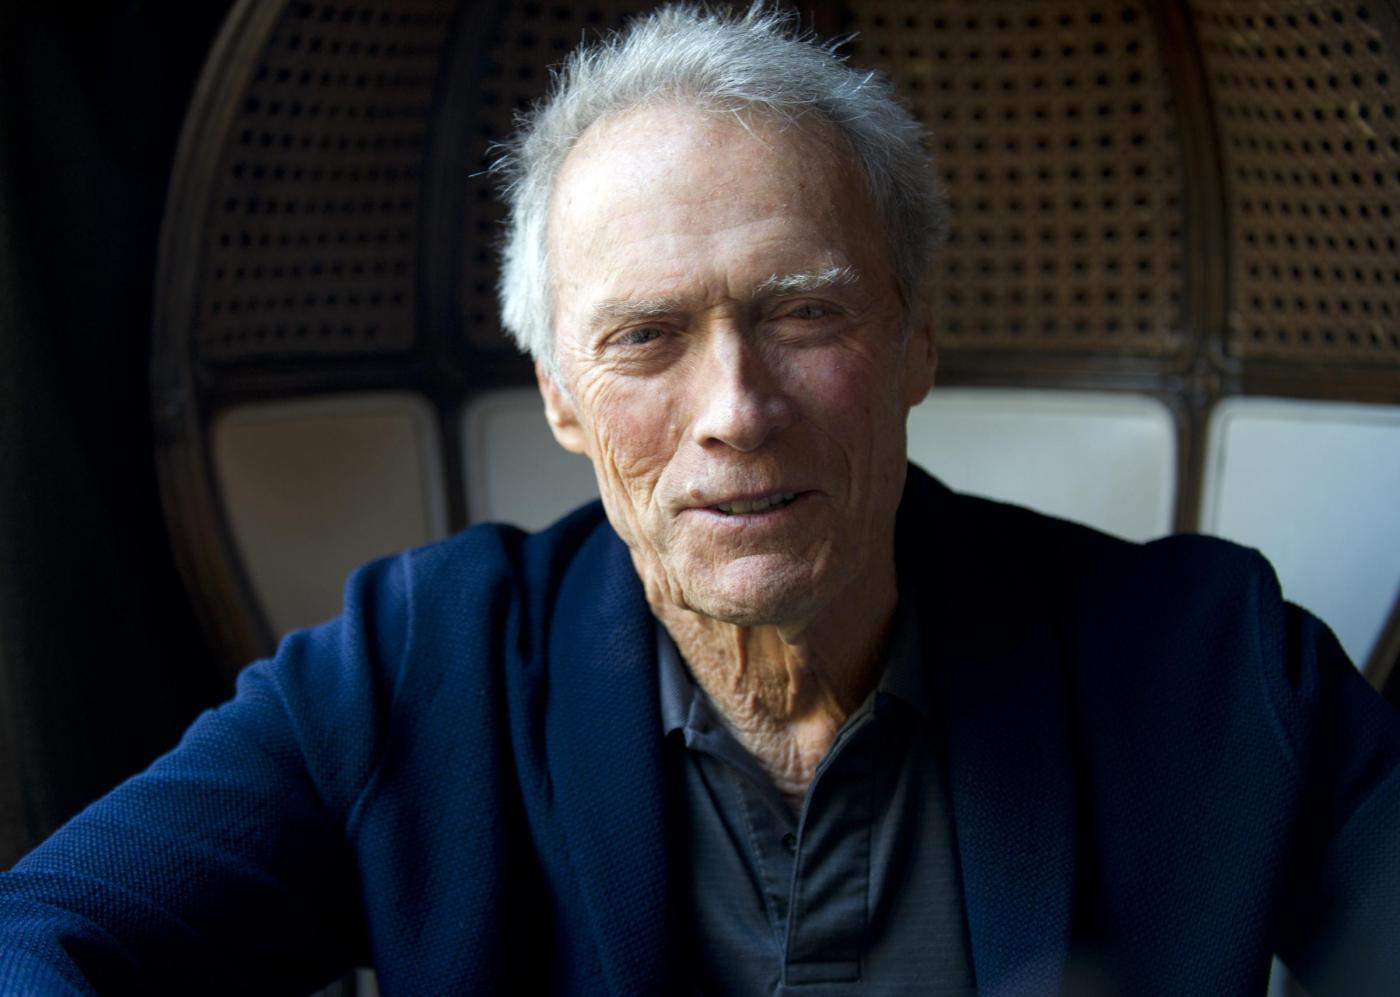 Clint Eastwood ritratti in conferenza stampa